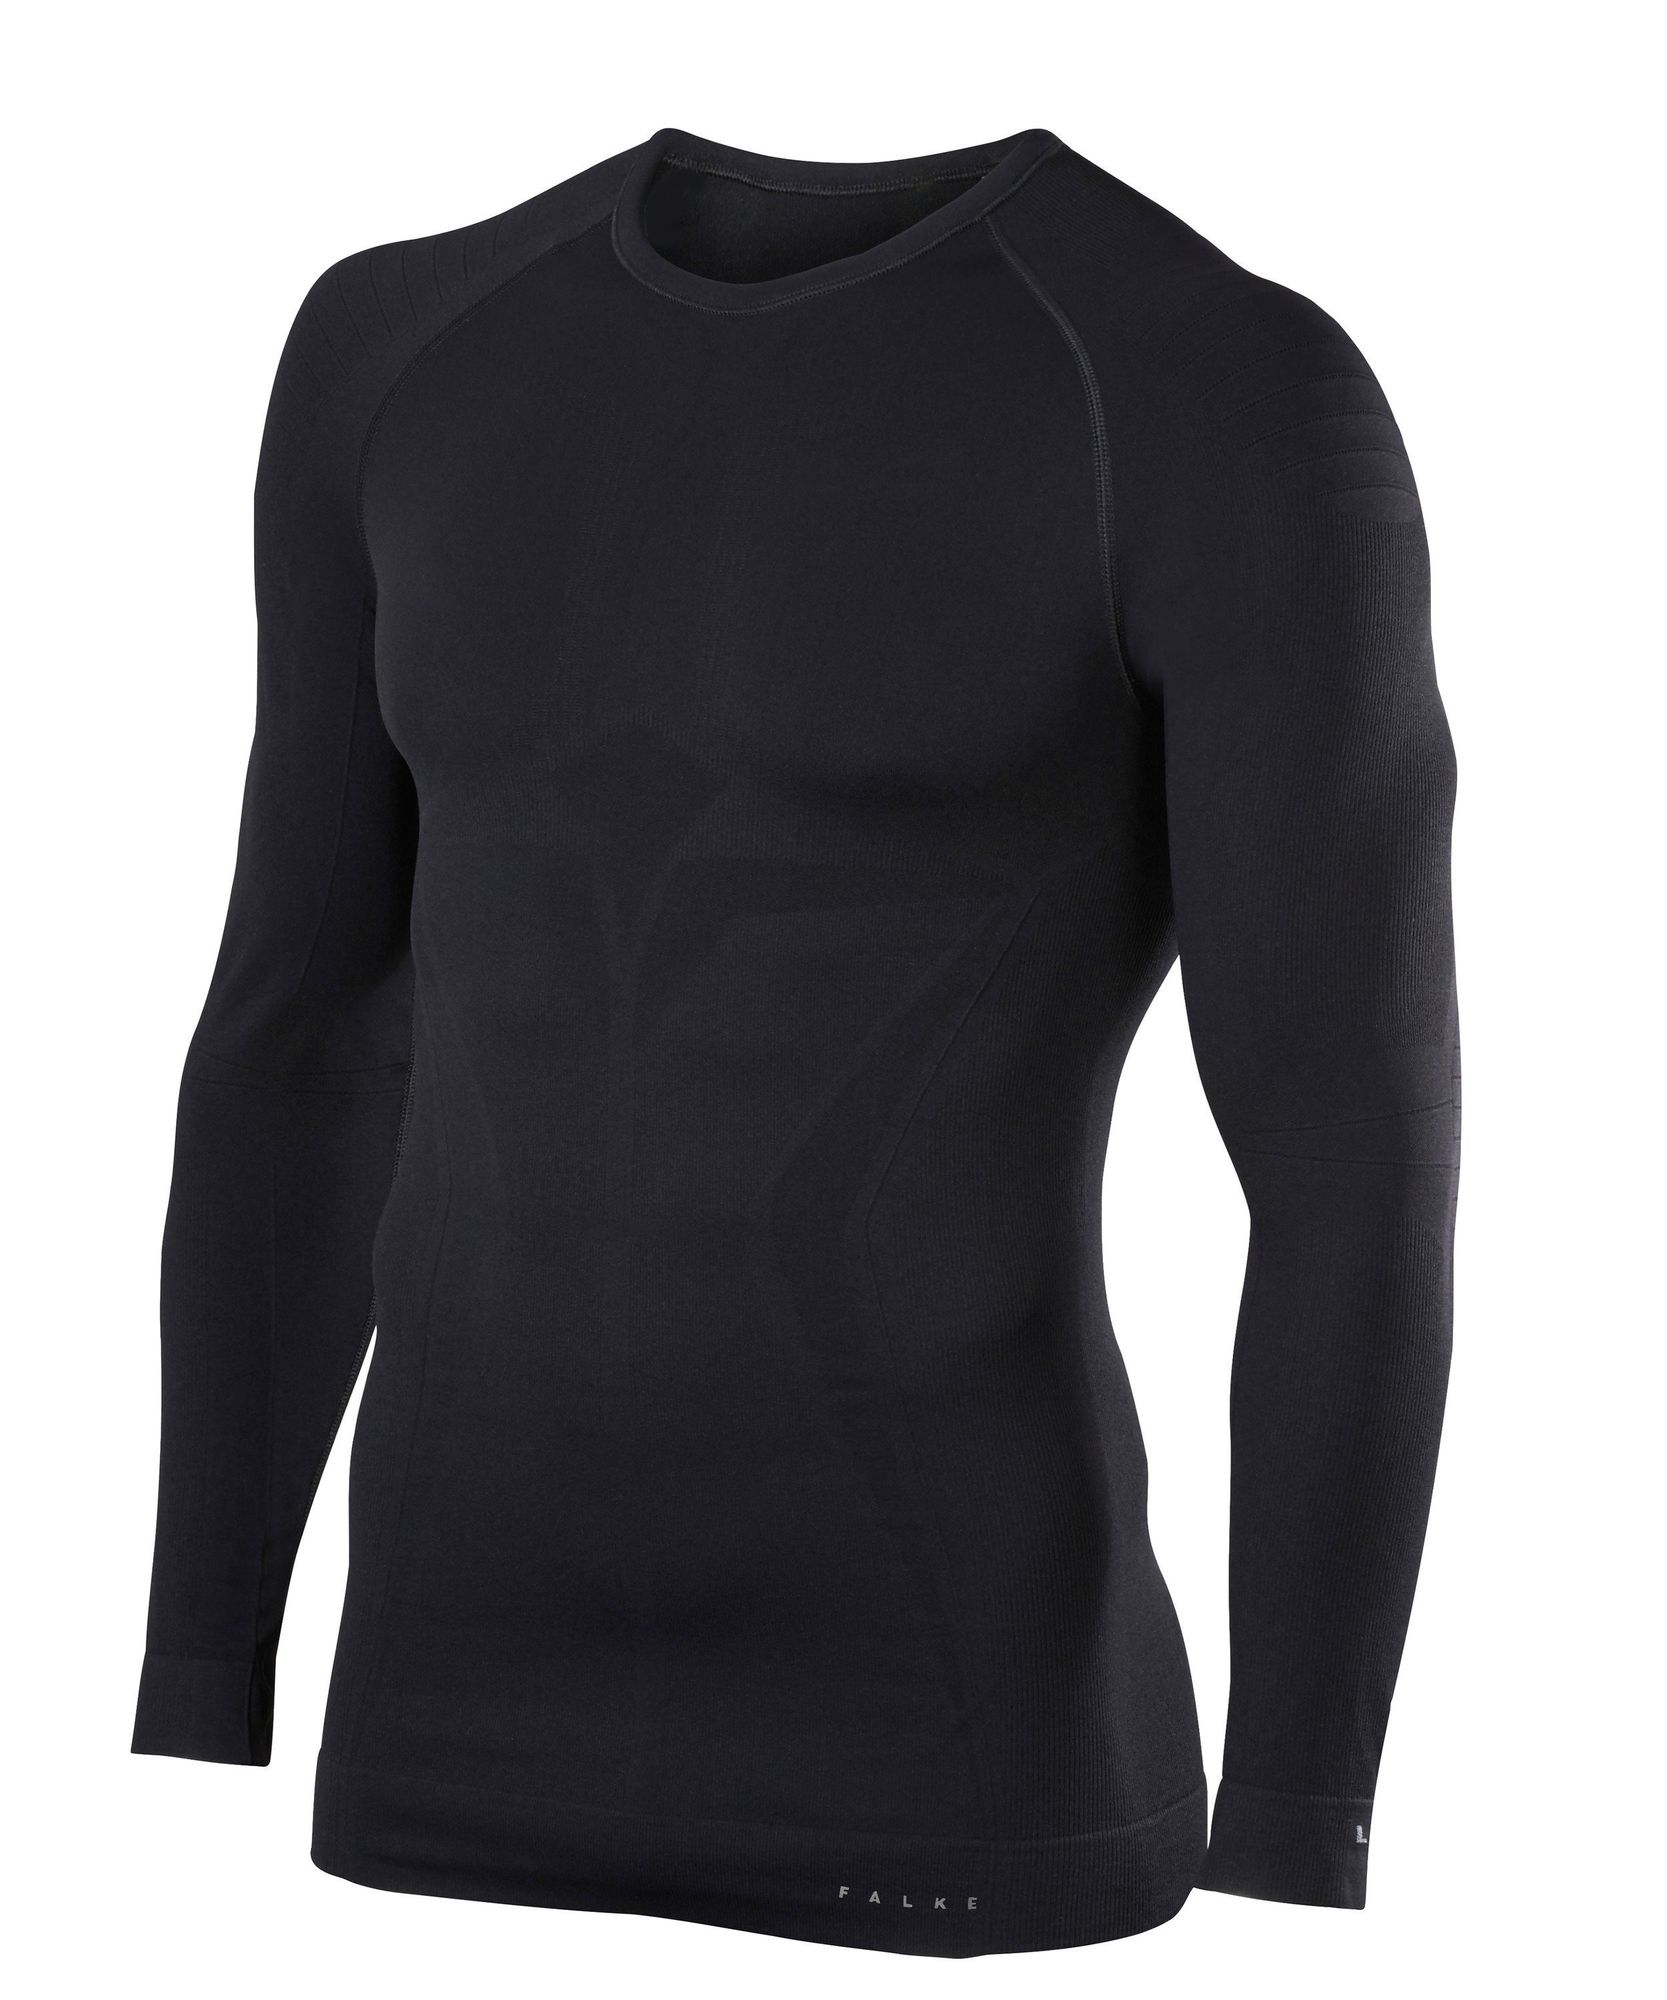 Falke Langarmshirt Maximum Warm in Schwarz